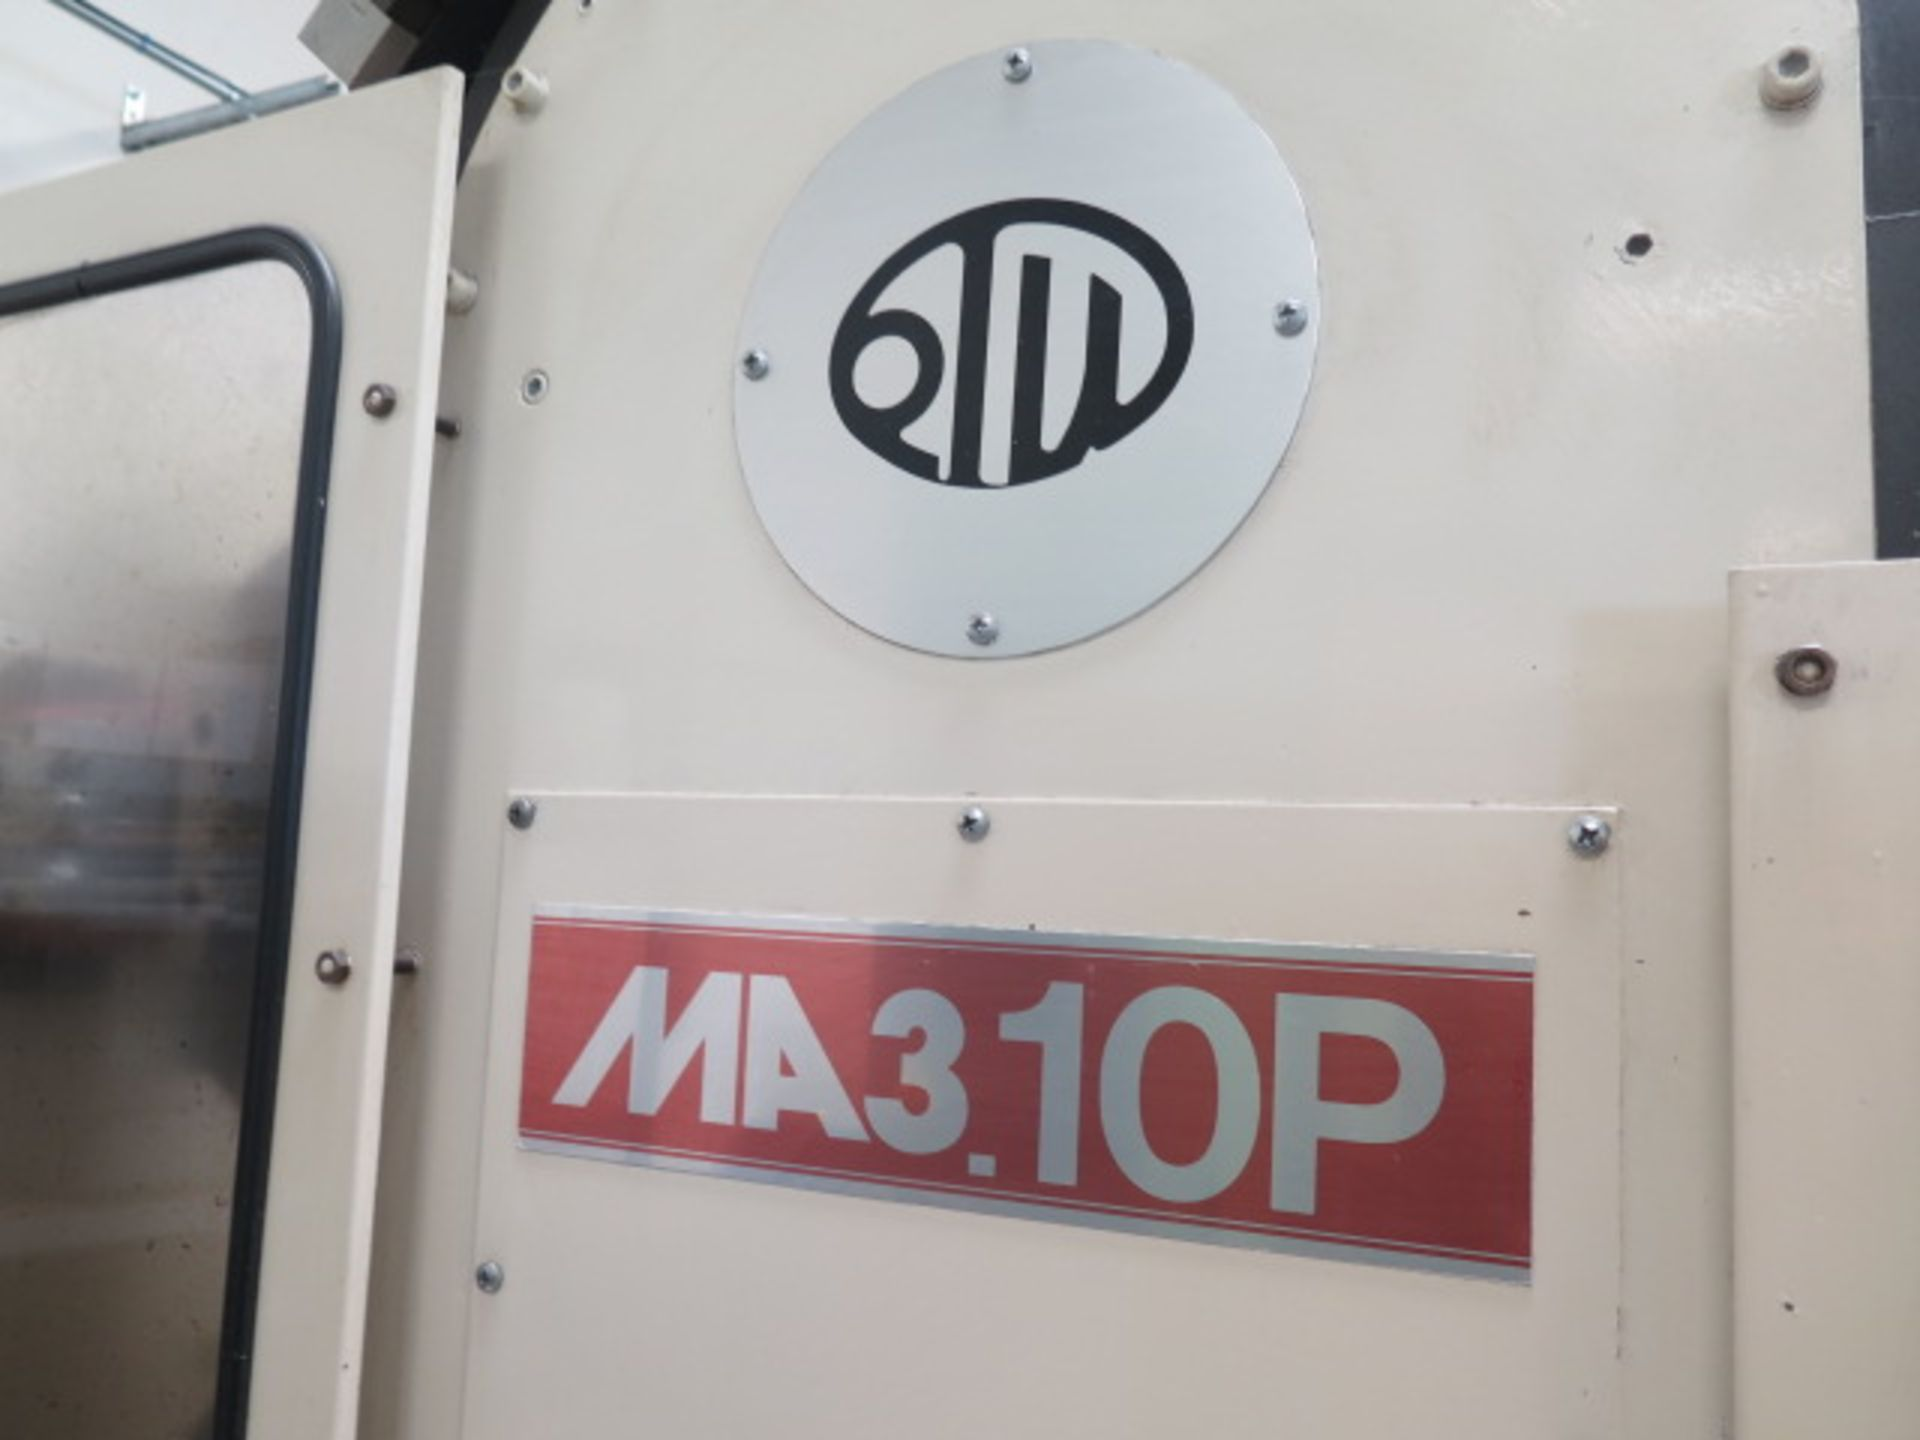 Tsugami MS3.10P Type MA3H 4-Axis 10-Pallet CNC HMC (HAS X-AXIS PROBLEM), SOLD AS IS - Image 3 of 20